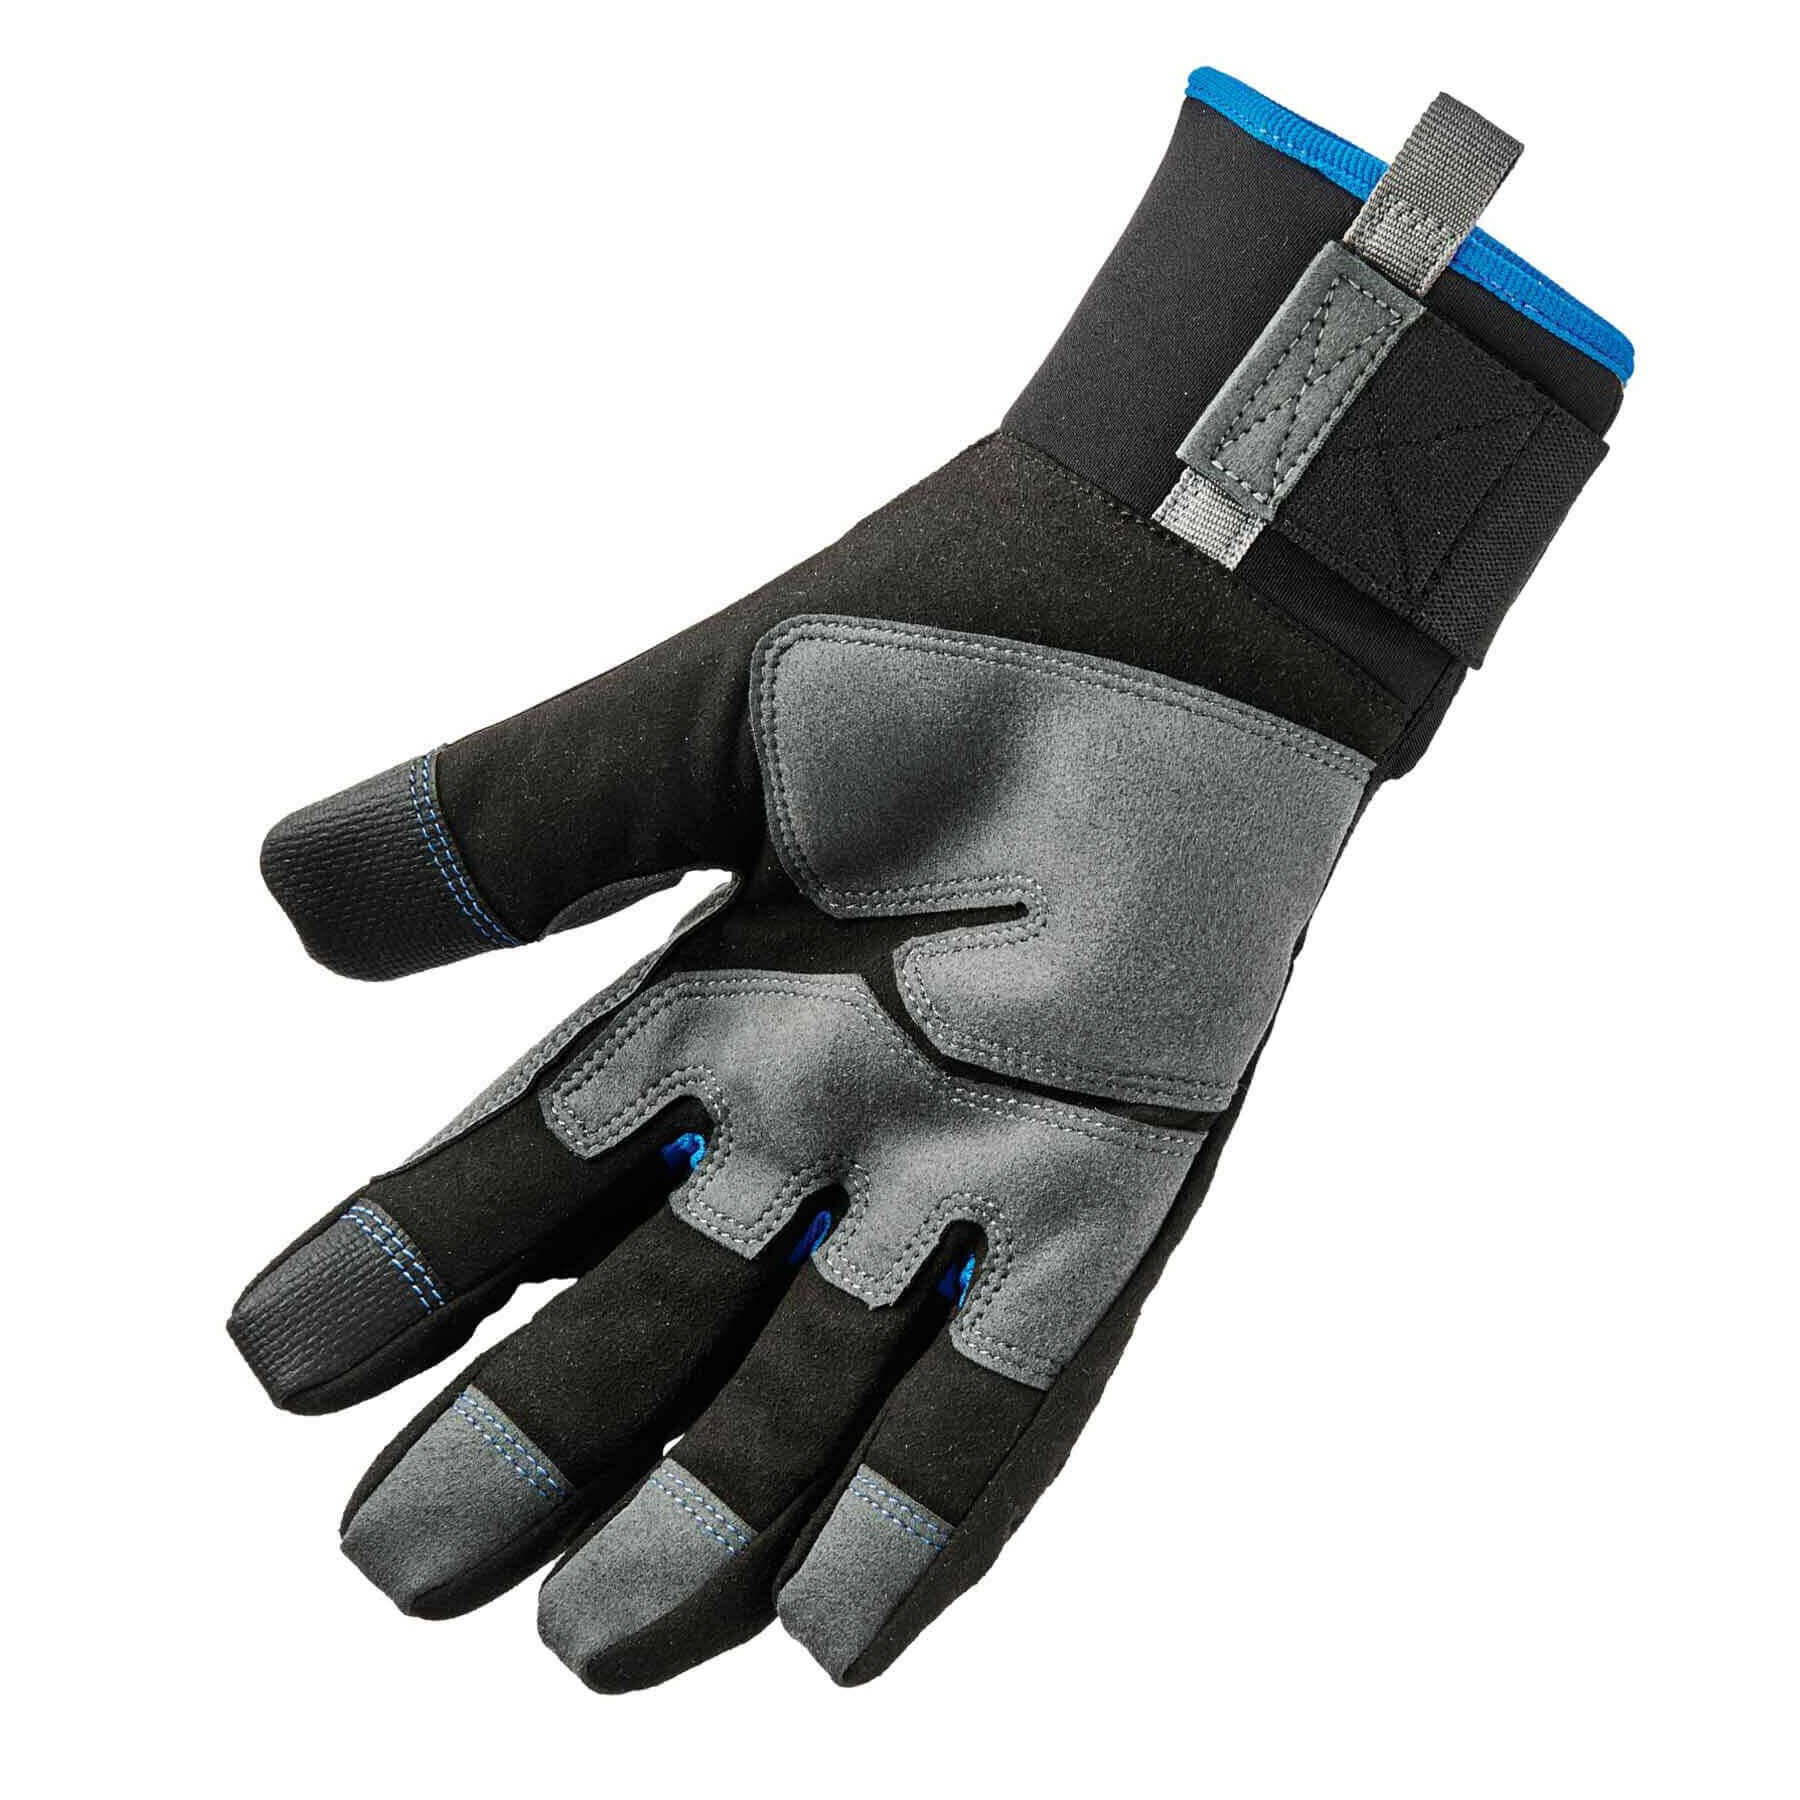 Ergodyne ProFlex 817WP Reinforced Thermal Waterproof Insulated Work Gloves, Touchscreen Capable, Black, Large by Ergodyne (Image #2)